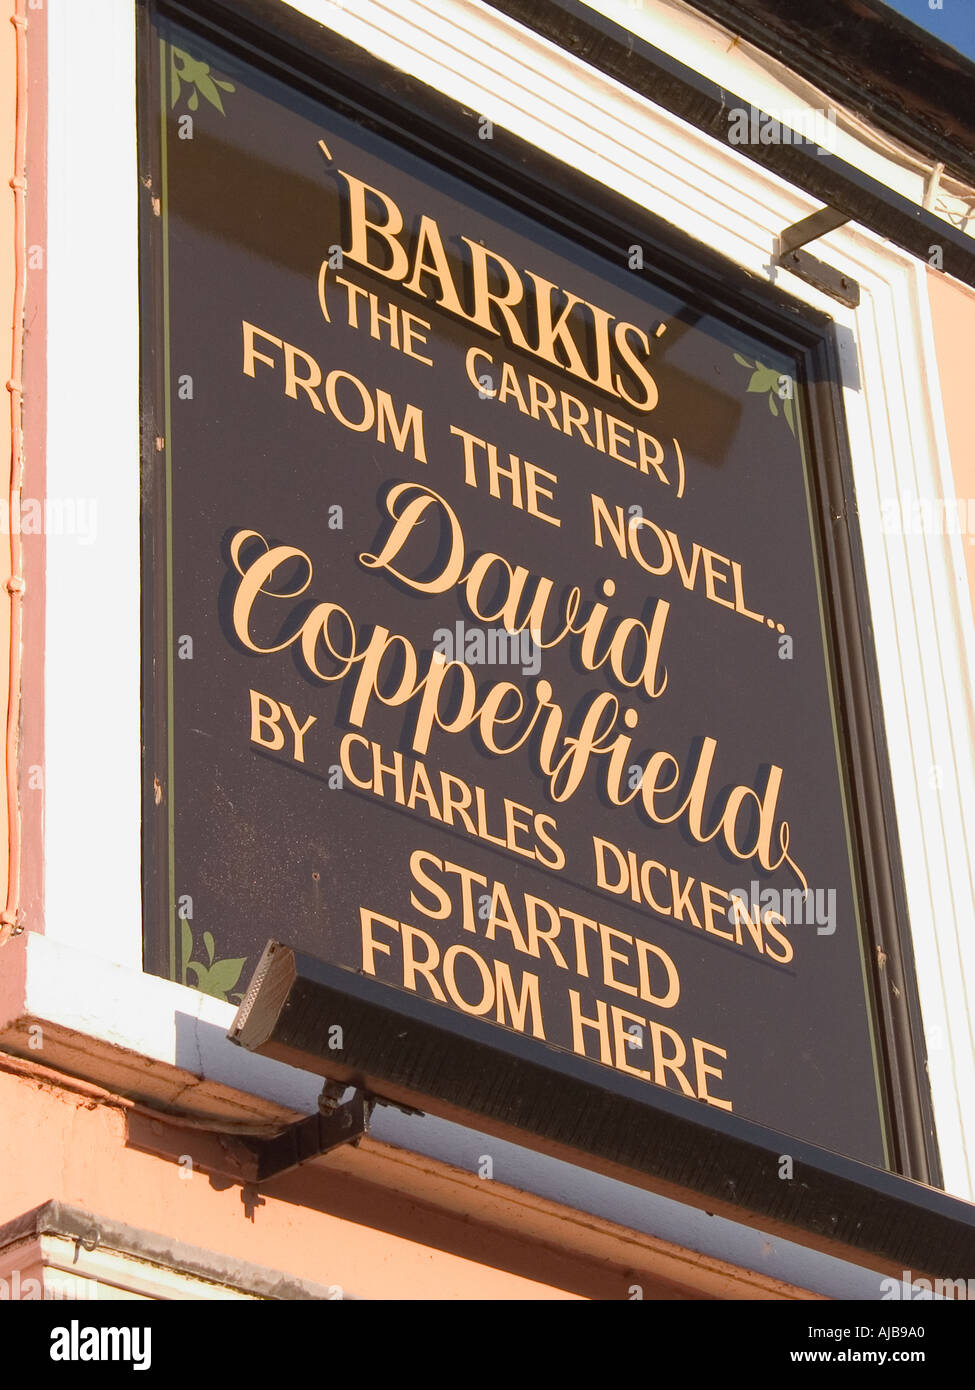 blundeston plough pub sign charles dickens started writing barks blundeston plough pub sign charles dickens started writing barks the carrier from the novel david copperfield